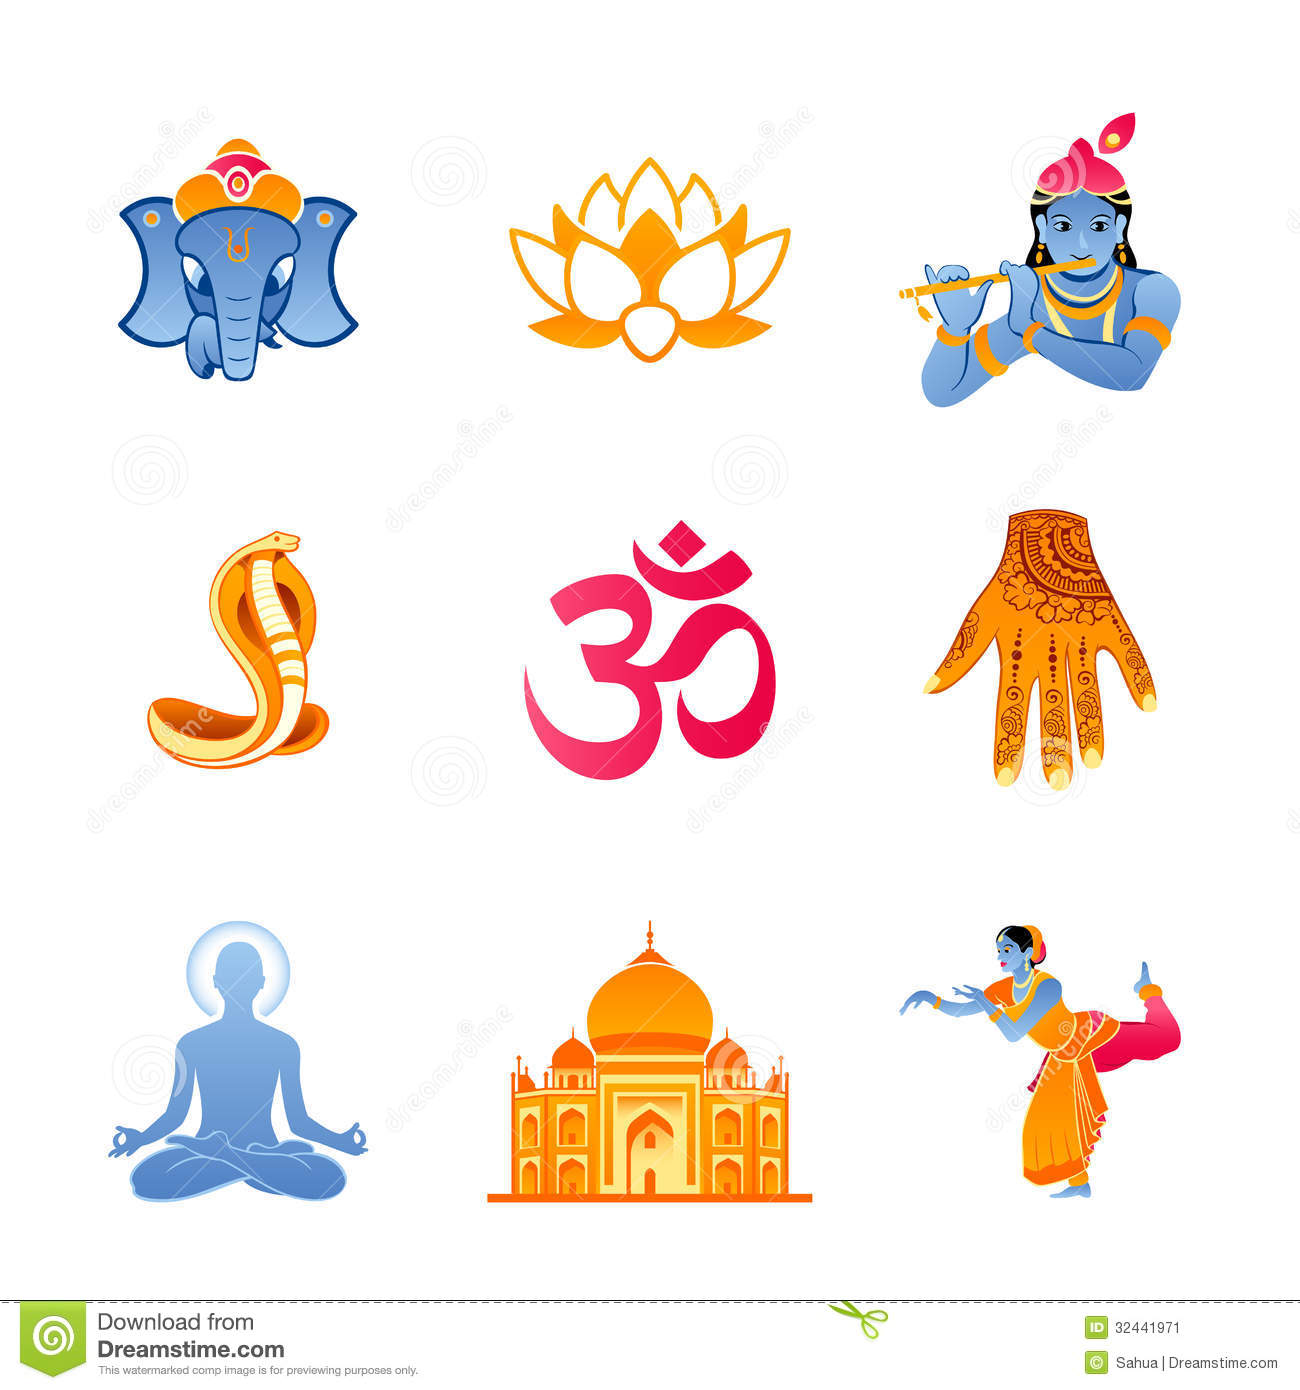 Spiritual, religious and culture icons of India.